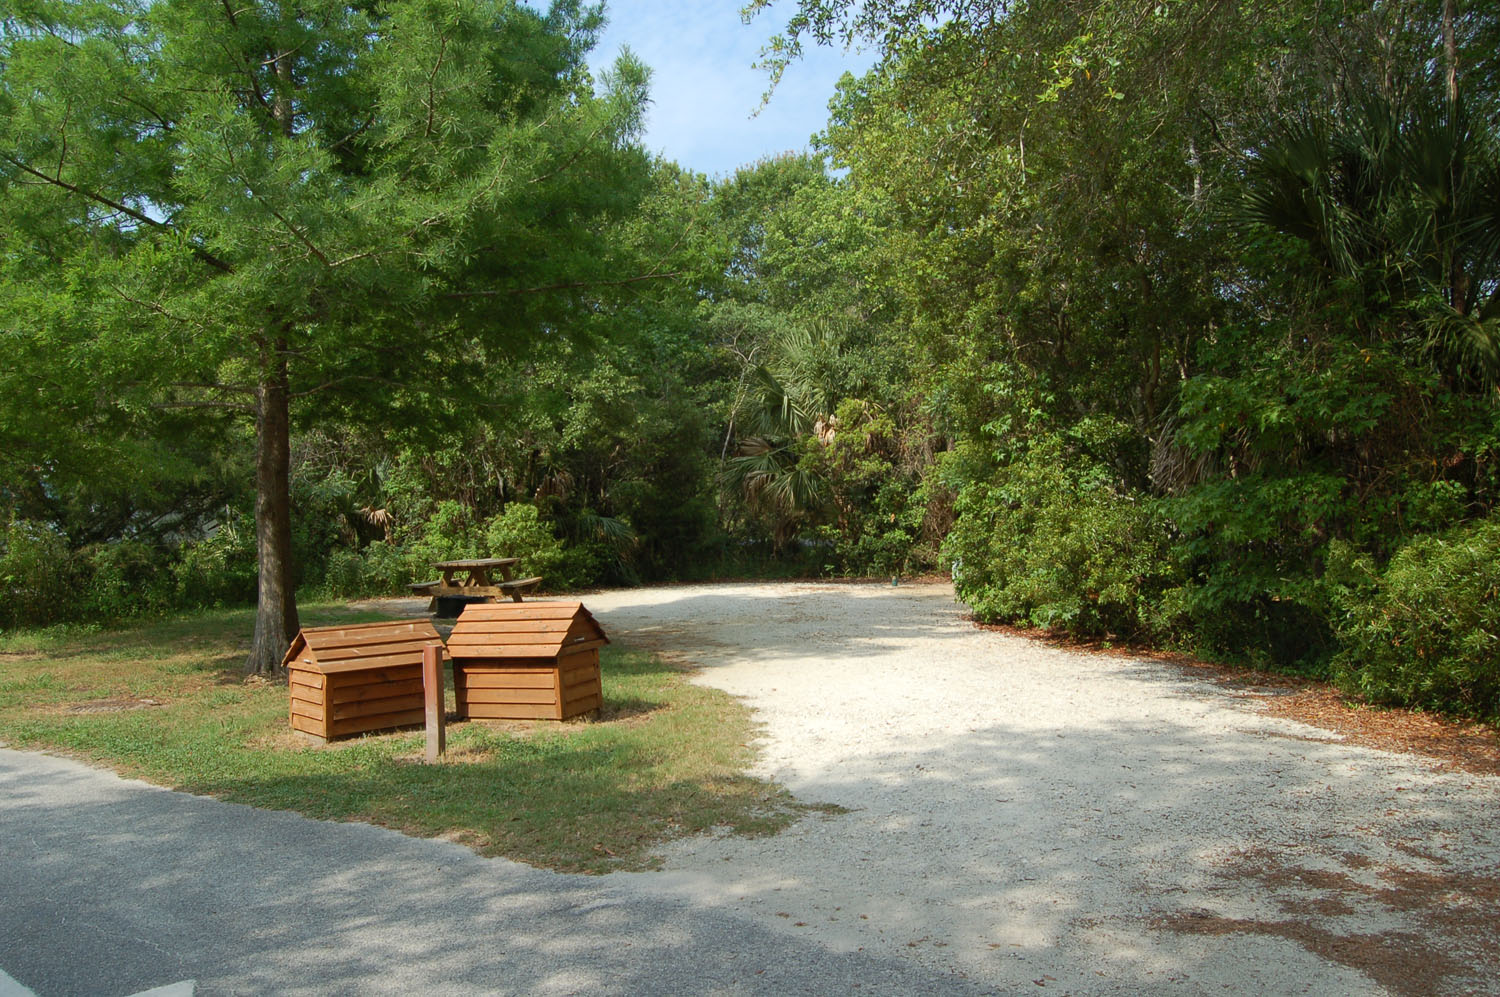 Image of campsite #44 at the Campground at James Island County Park